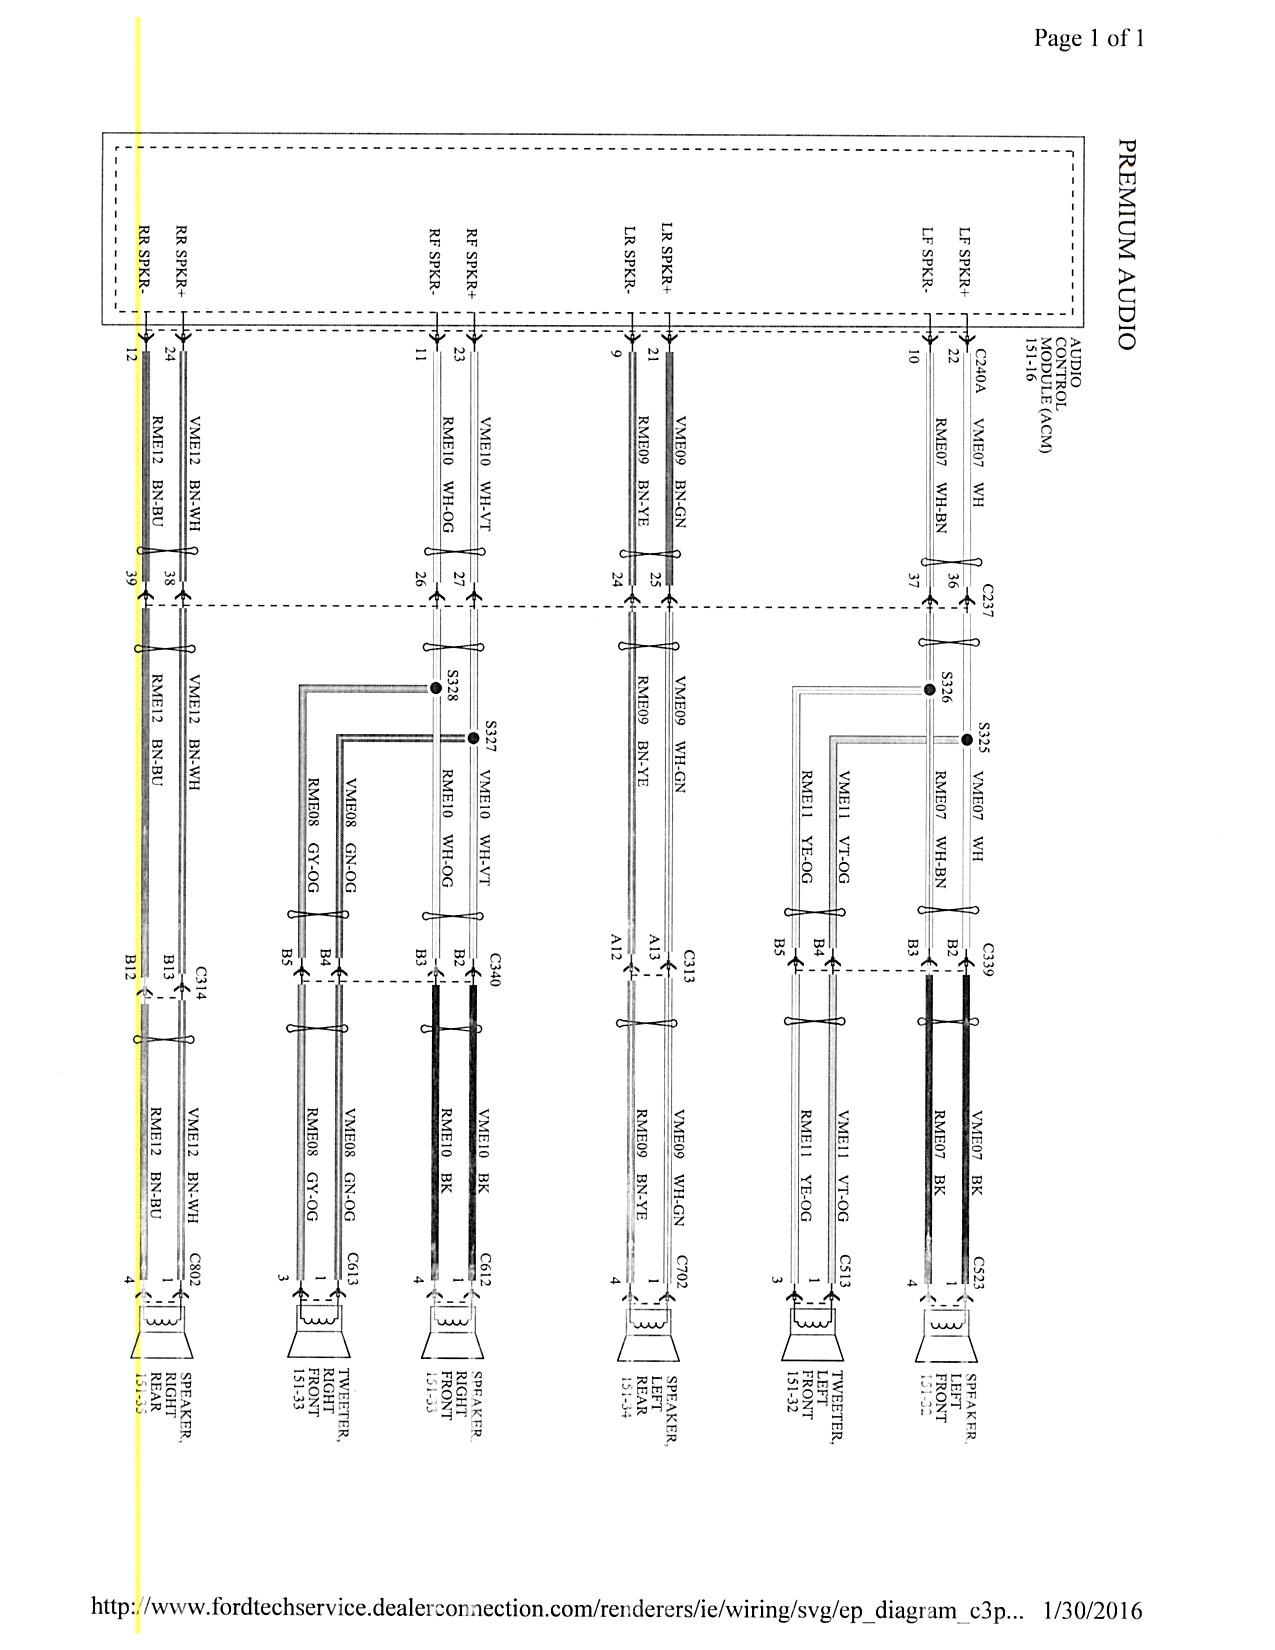 2015 ford focus se stereo wiring diagram